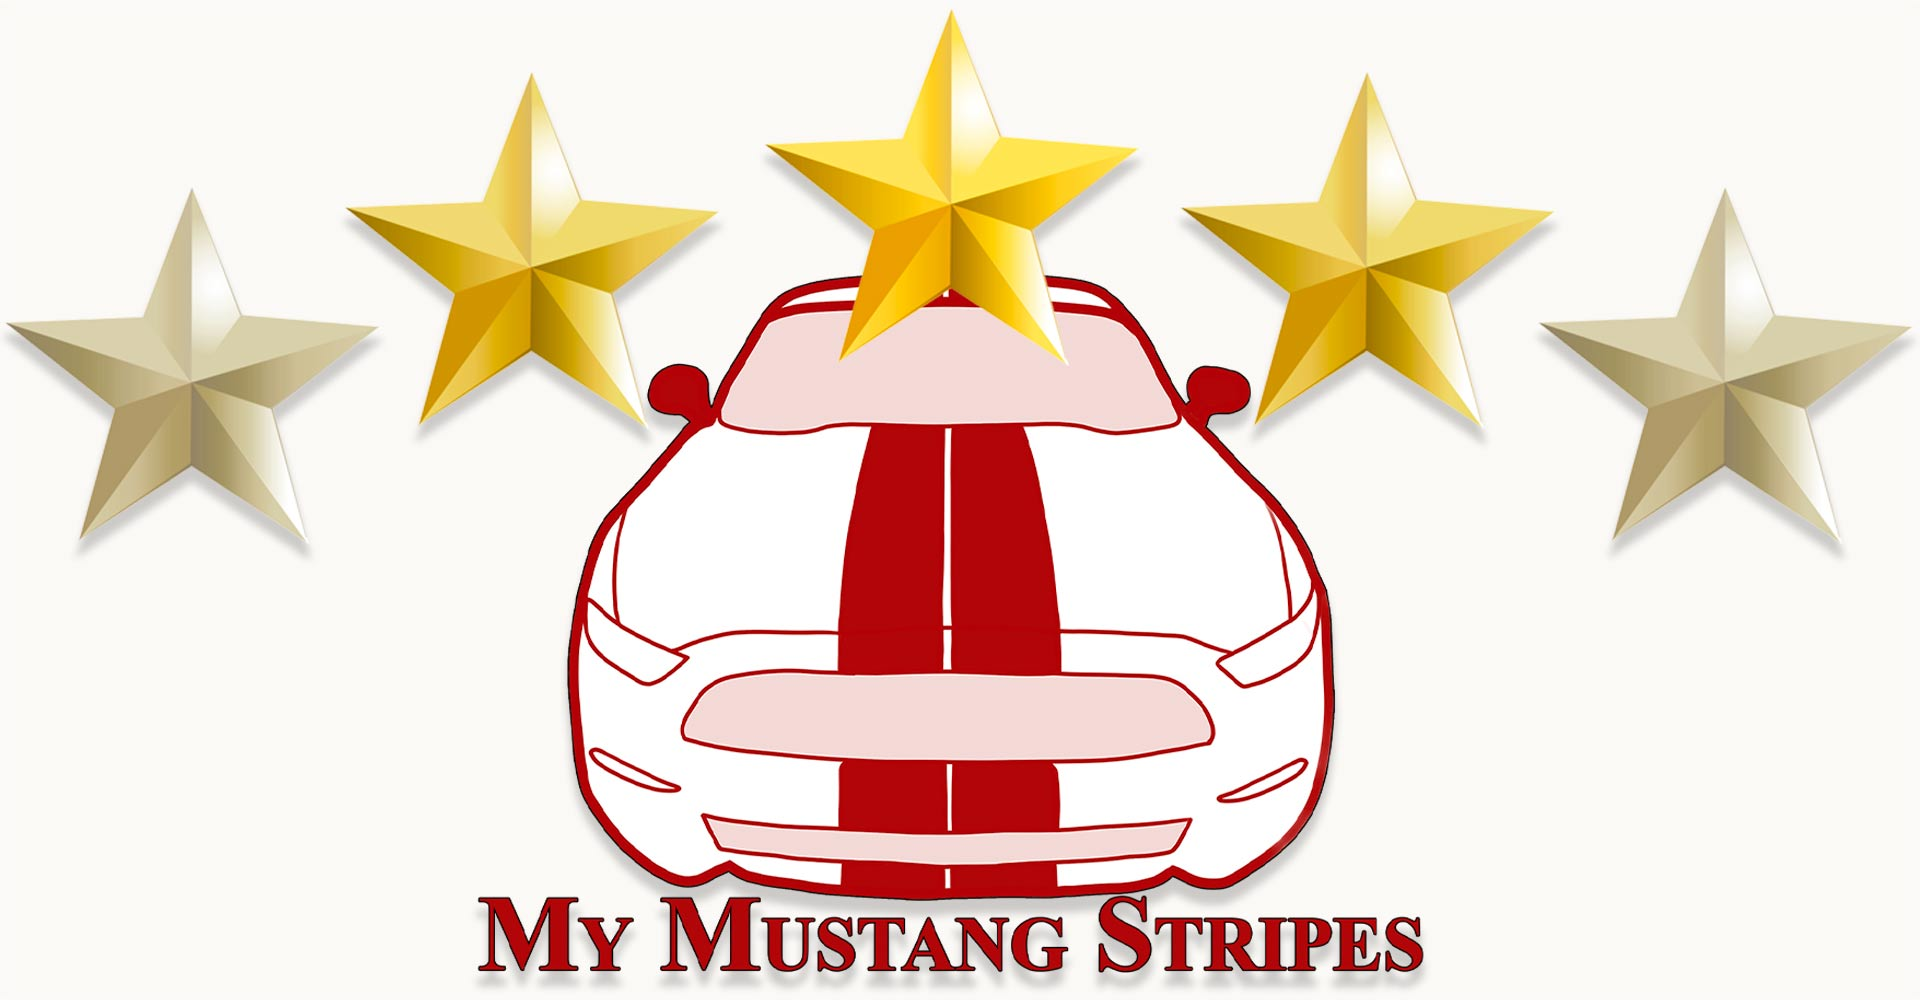 MyMustangStripes Reviews